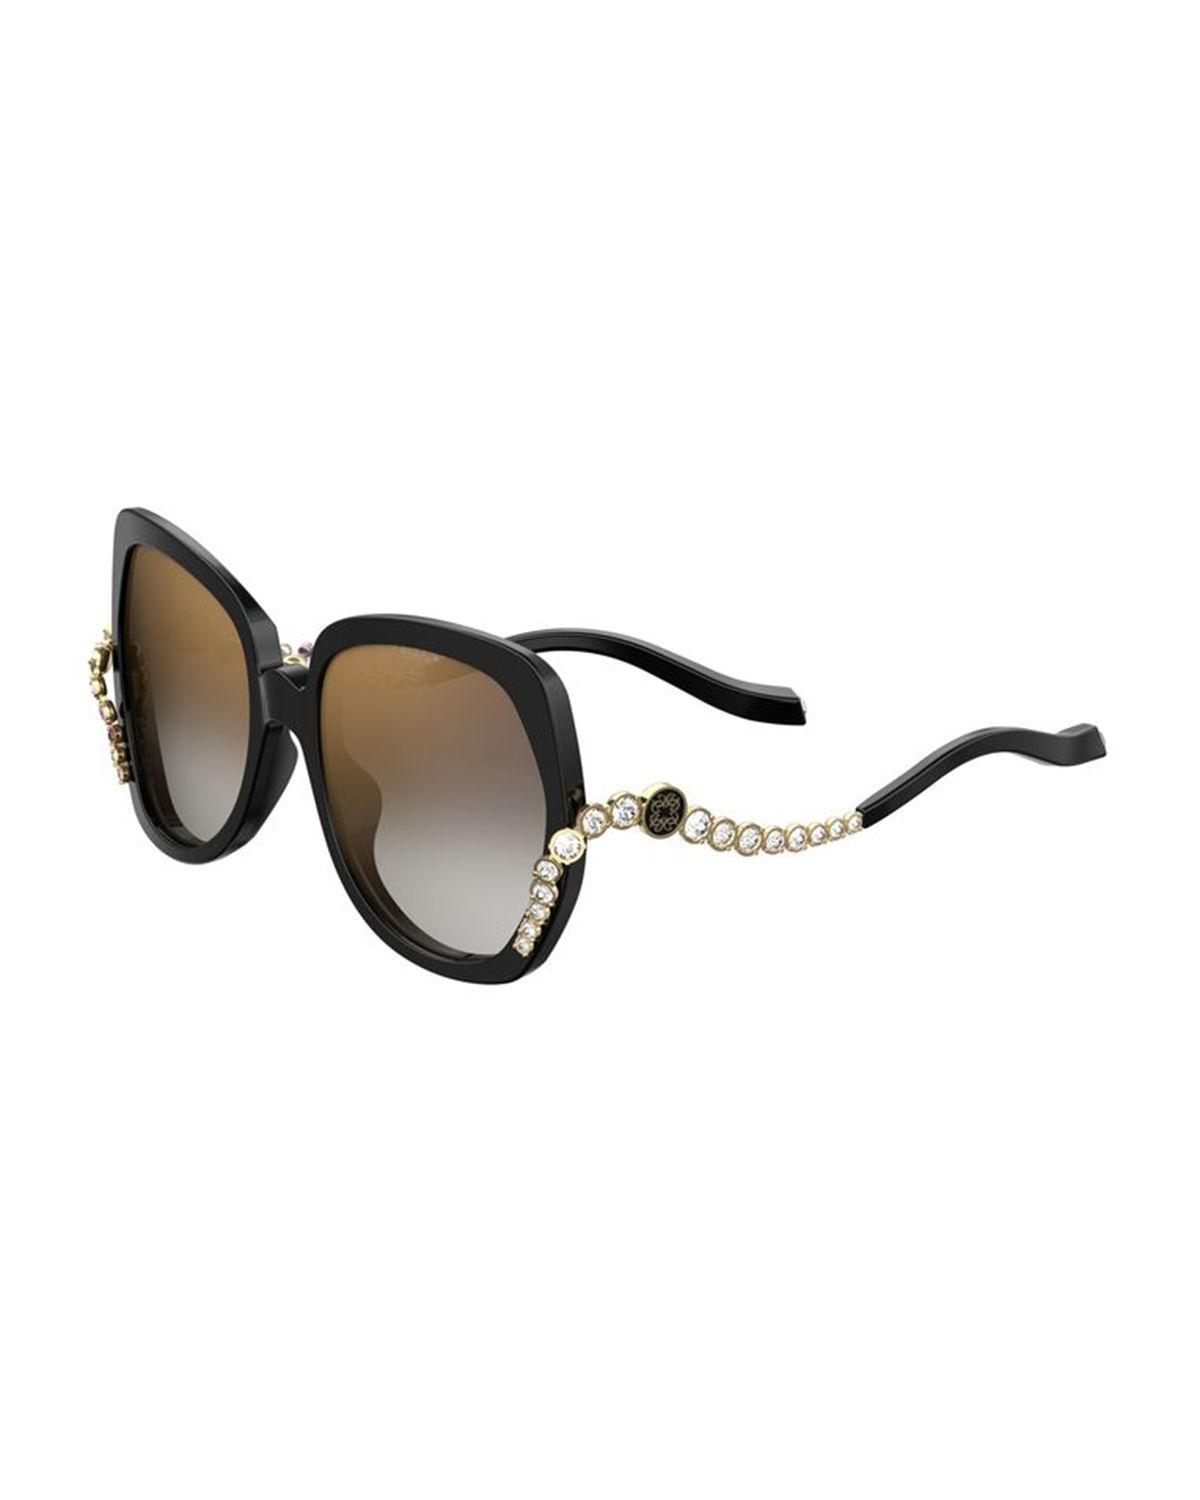 fbe6918b43 Elie Saab. Women s Black Square Acetate Sunglasses W  Crystal Wave Arms.   780 From Neiman Marcus ...